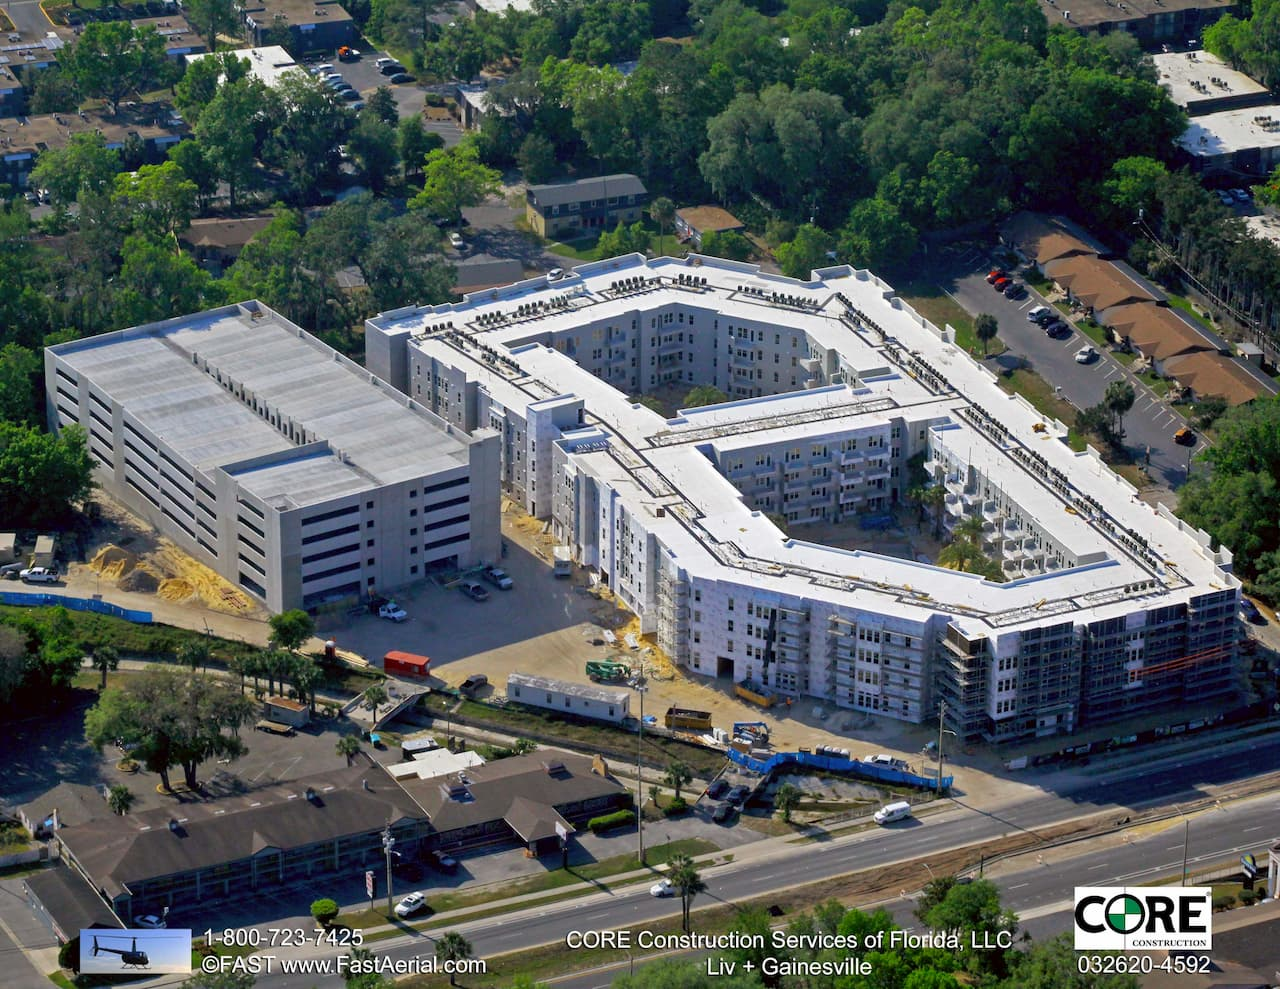 Aerial View of Construction Work at LIV+ Gainesville Apartments